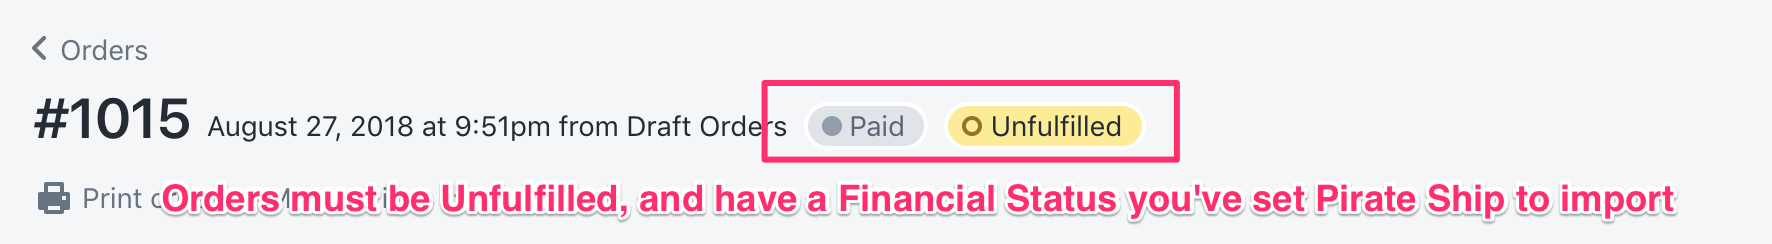 A screenshot showing the order status that appears on Shopify for an individual order. For this particular order, it shows a status of 'Paid' and 'Unfulfilled.' Below, there's a notation which reads, 'Orders must be Unfulfilled, and have a Financial Status you've set Pirate Ship to import.'